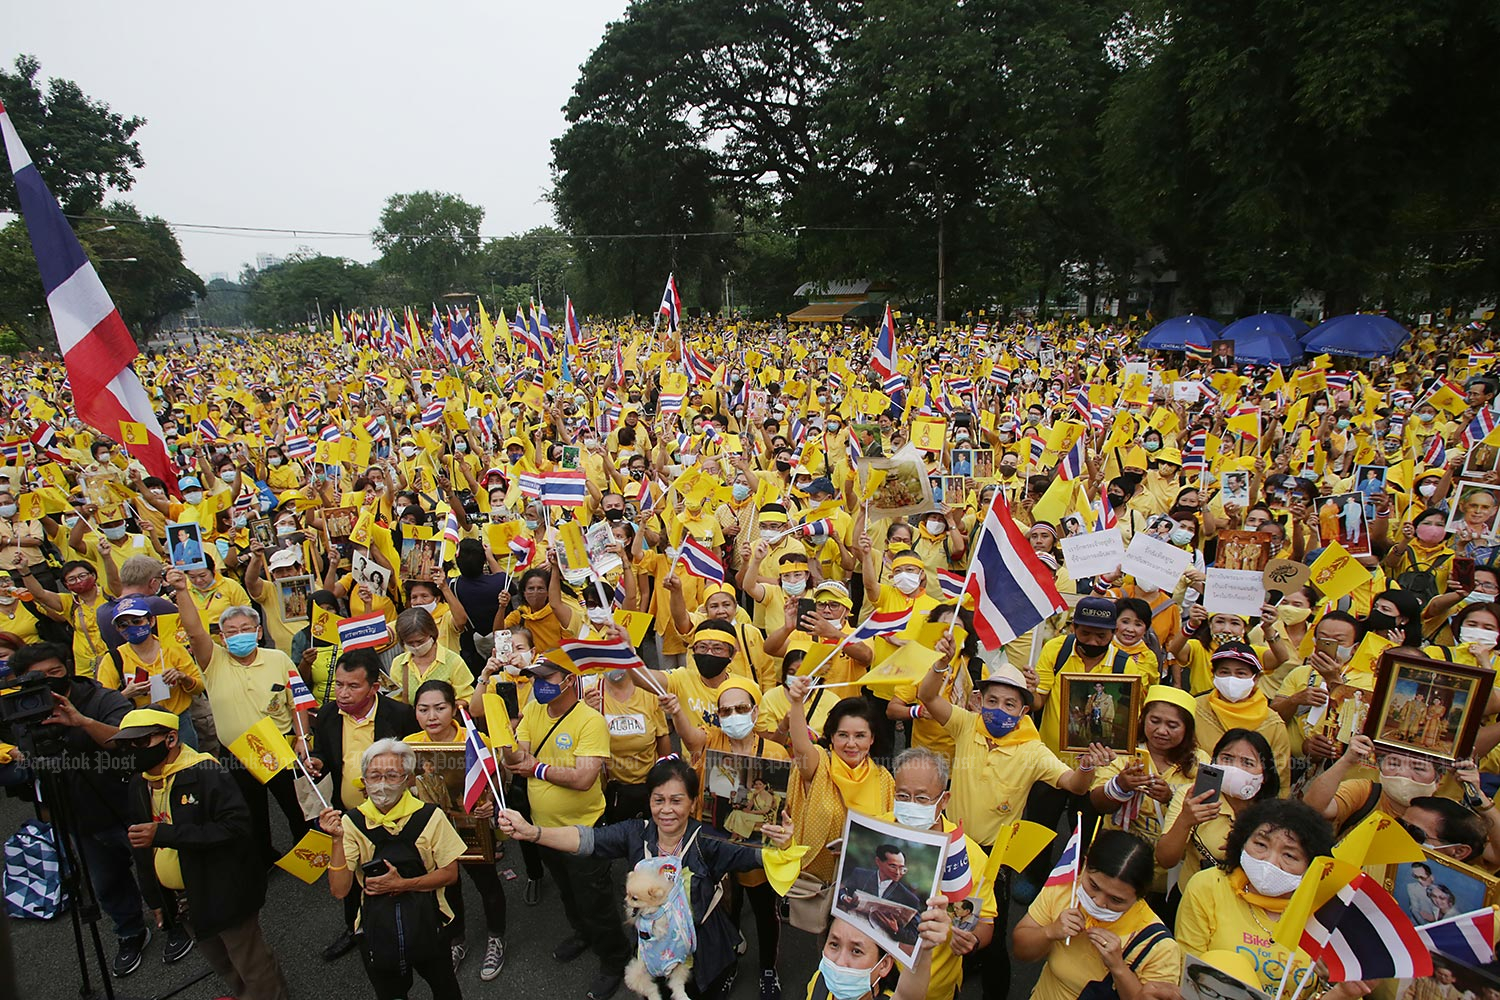 Yellow-clad people converge at Lumpini Park in Bangkok on Tuesday in a show of support for the royal institution. (Photo by Apichit Jinakul)